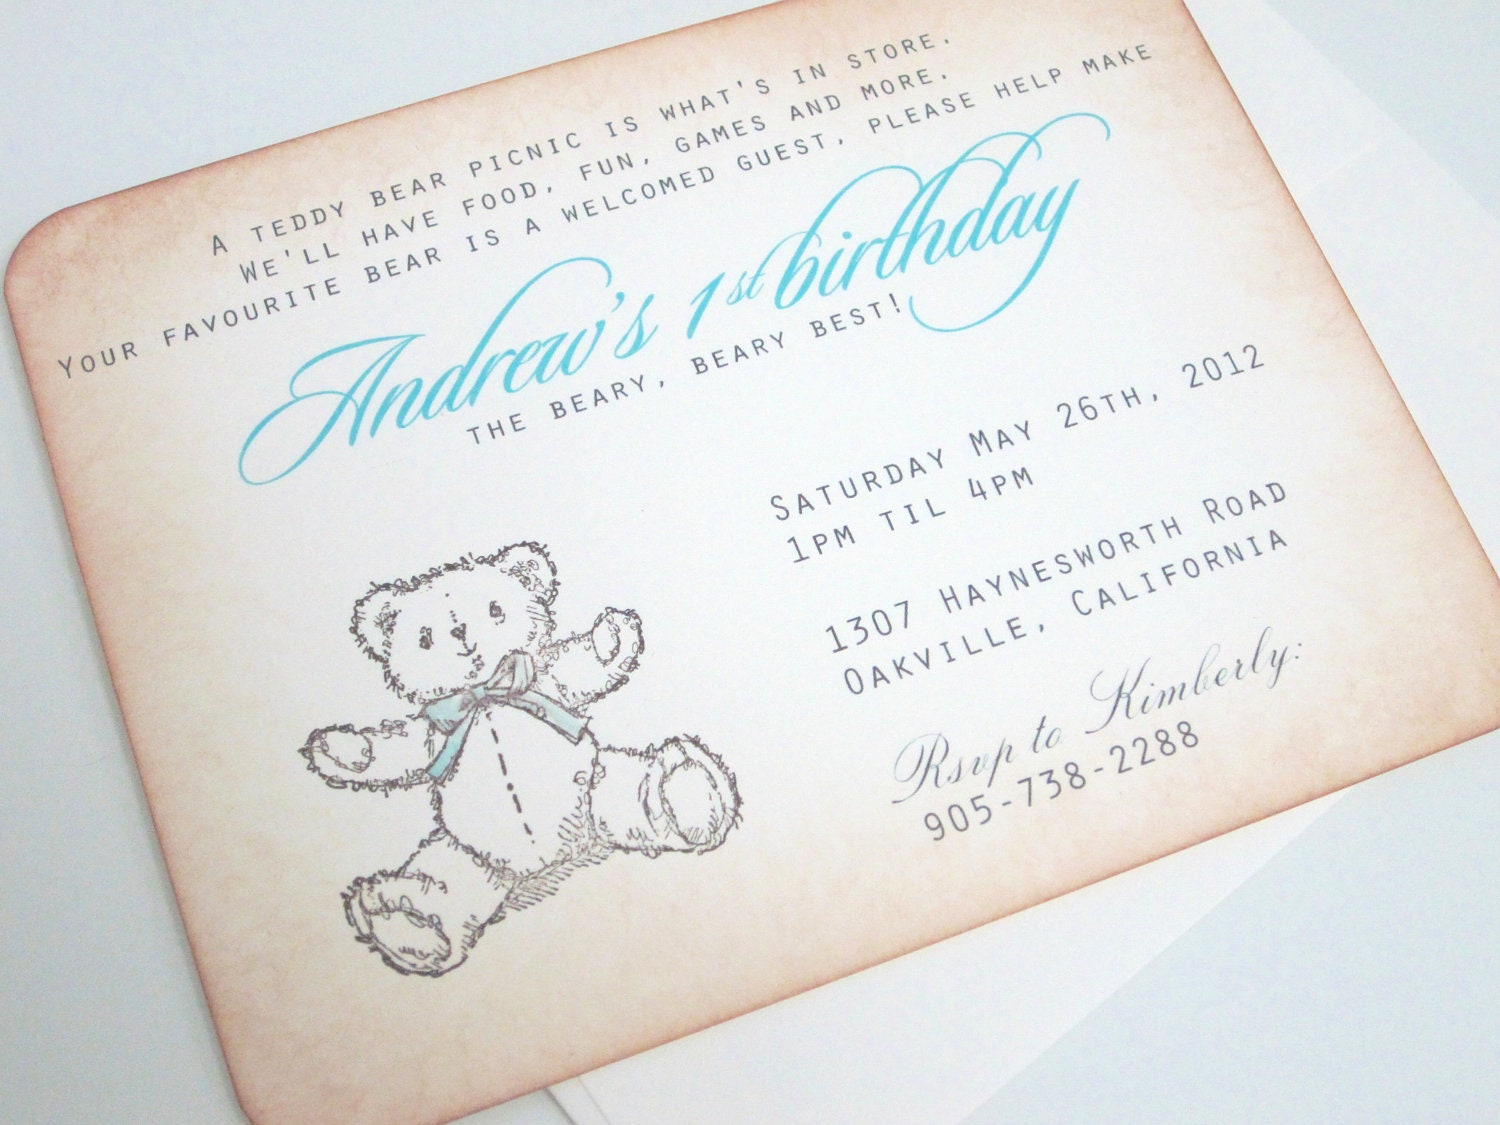 Baby Welcome Party Invitation as nice invitation ideas